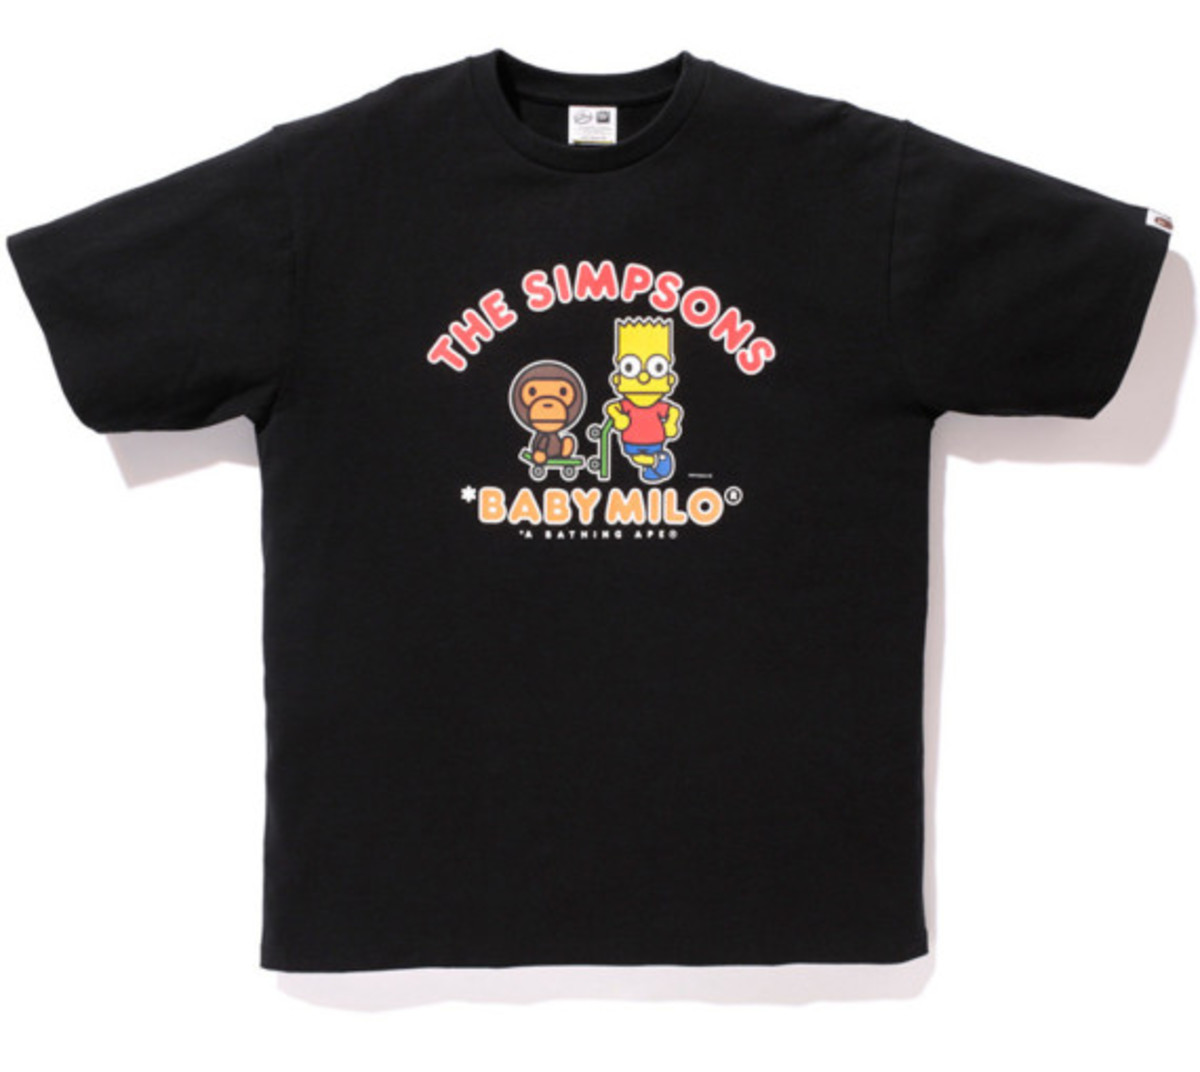 the-simpsons-bape-collection-available-10